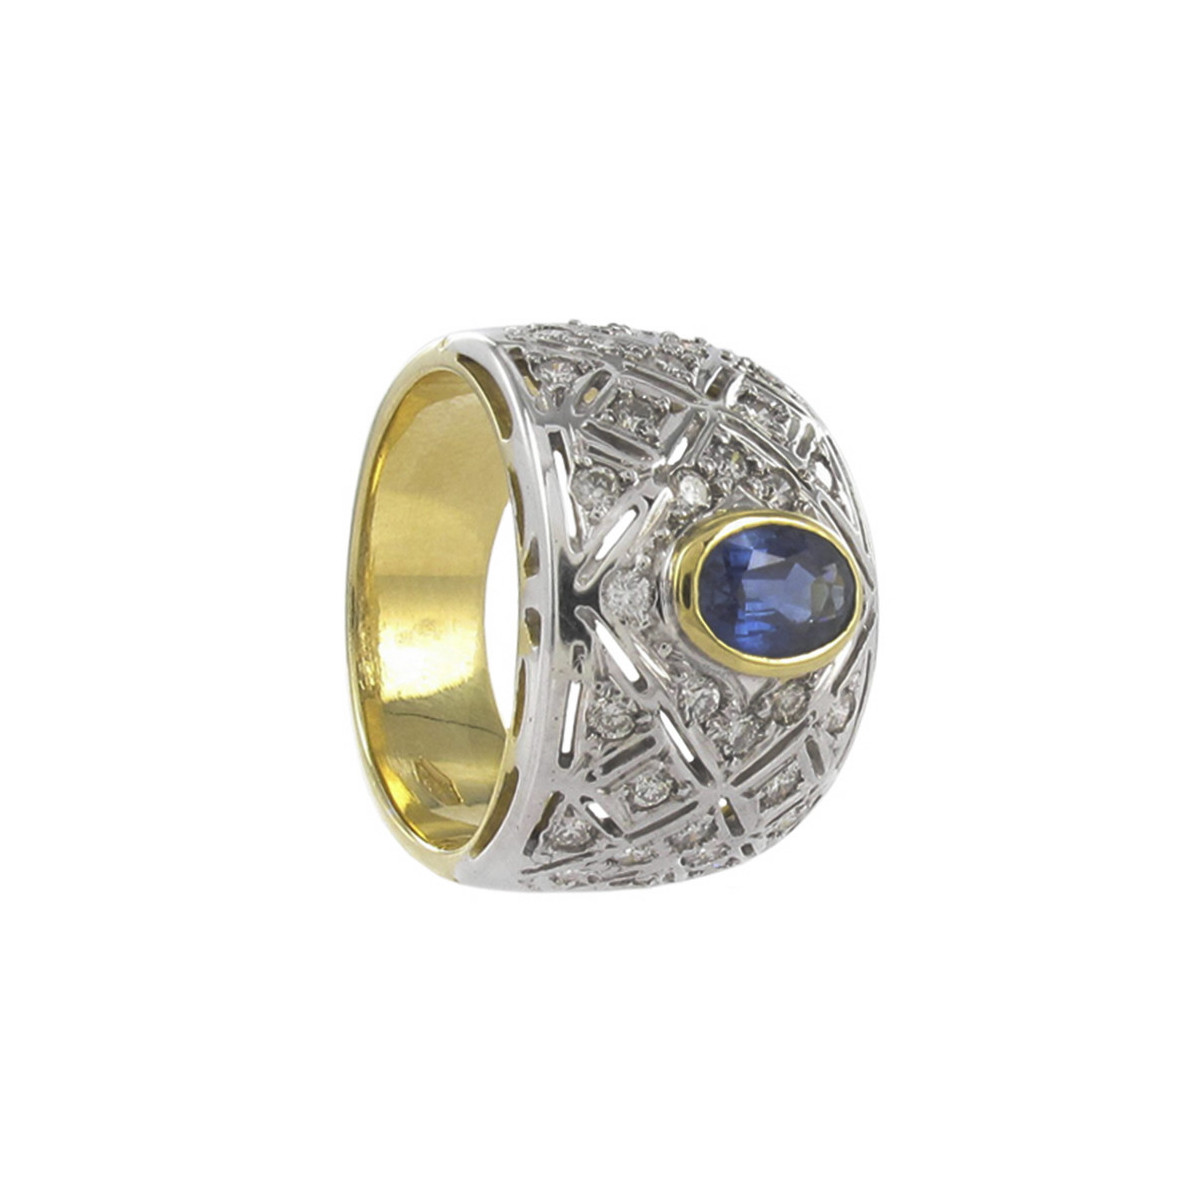 RING 2 GOLD WITH DIAMONDS AND SAPPHIRE